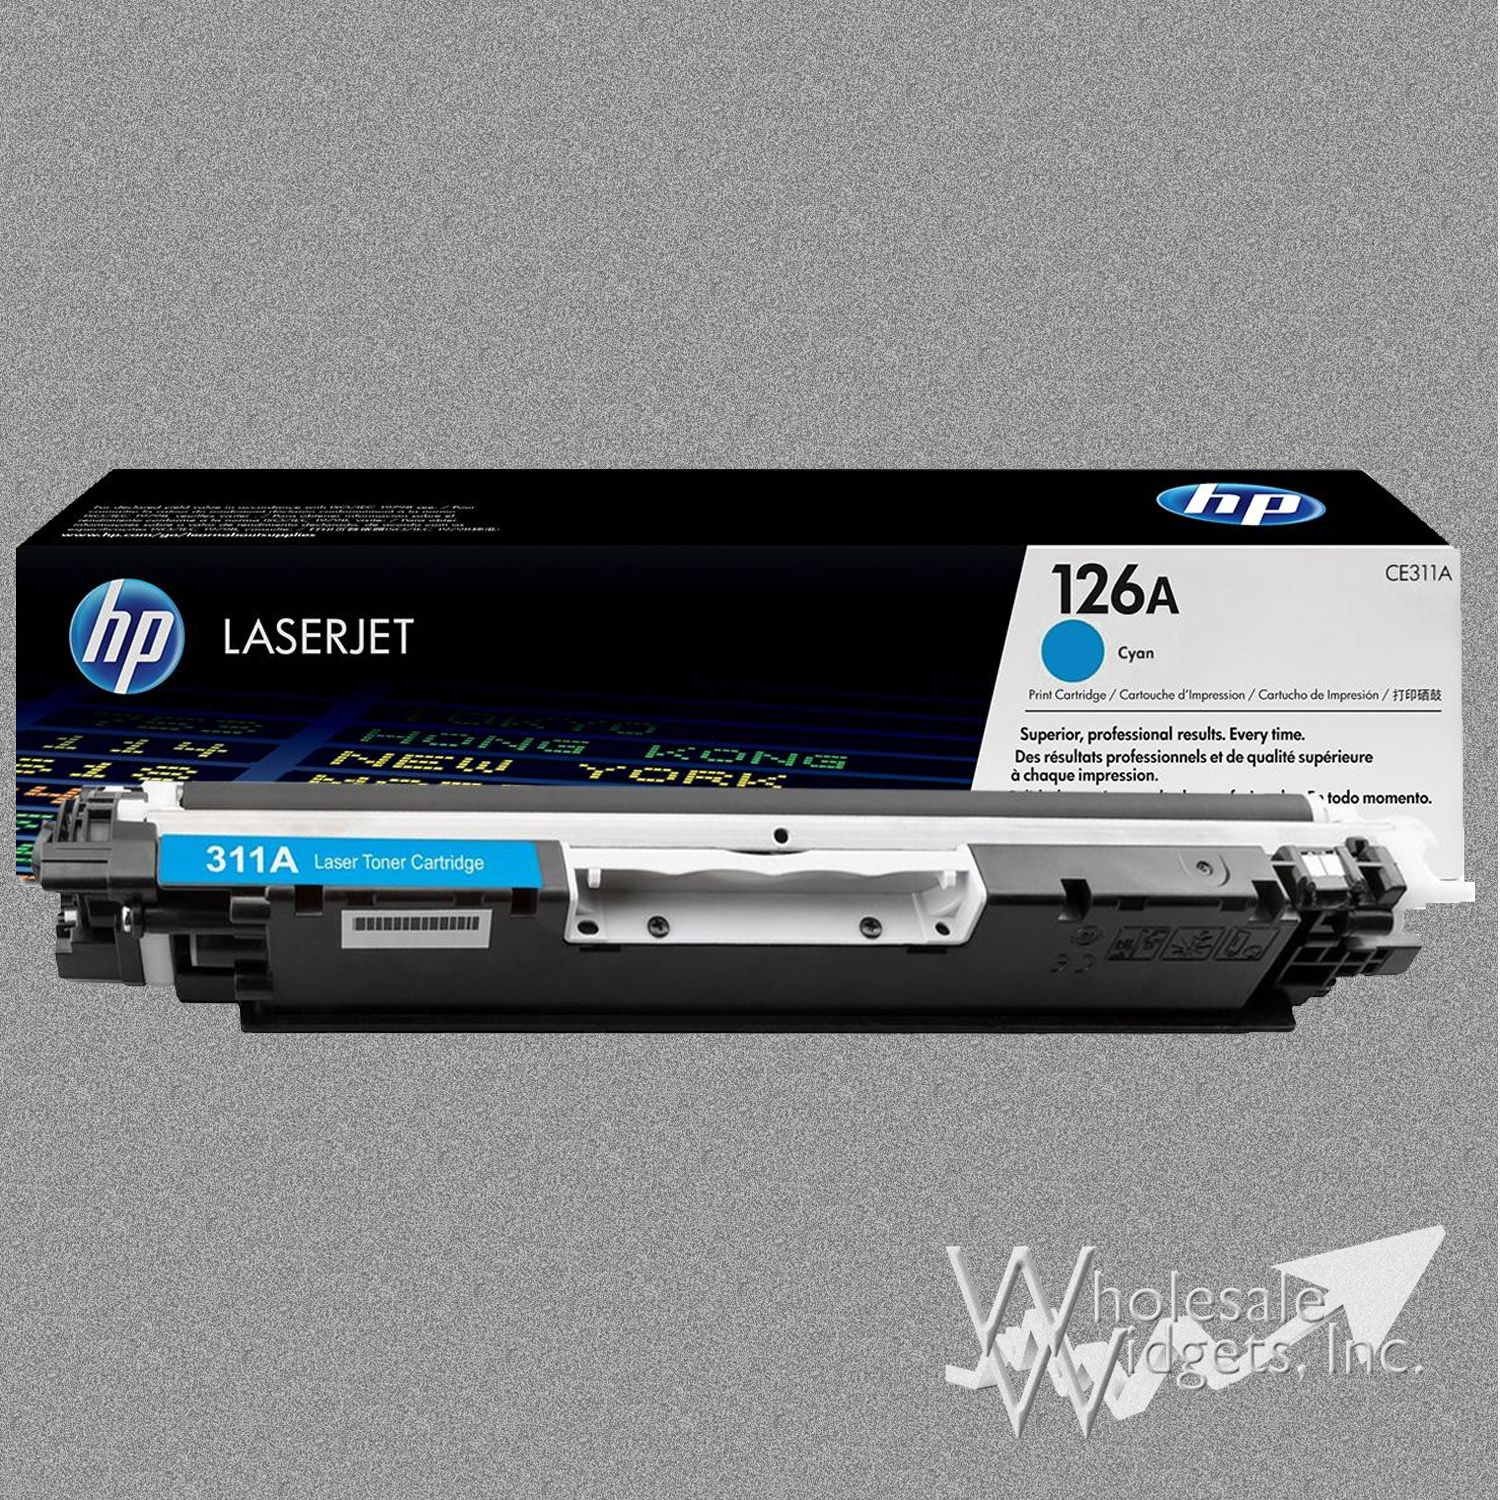 Hp 304a Black Toner For Use In Color Laserjet 24k Cartridge Cc364x Cm2320 Mfp Cp2025 35k Page Yield Cc530a Genuine Pinterest